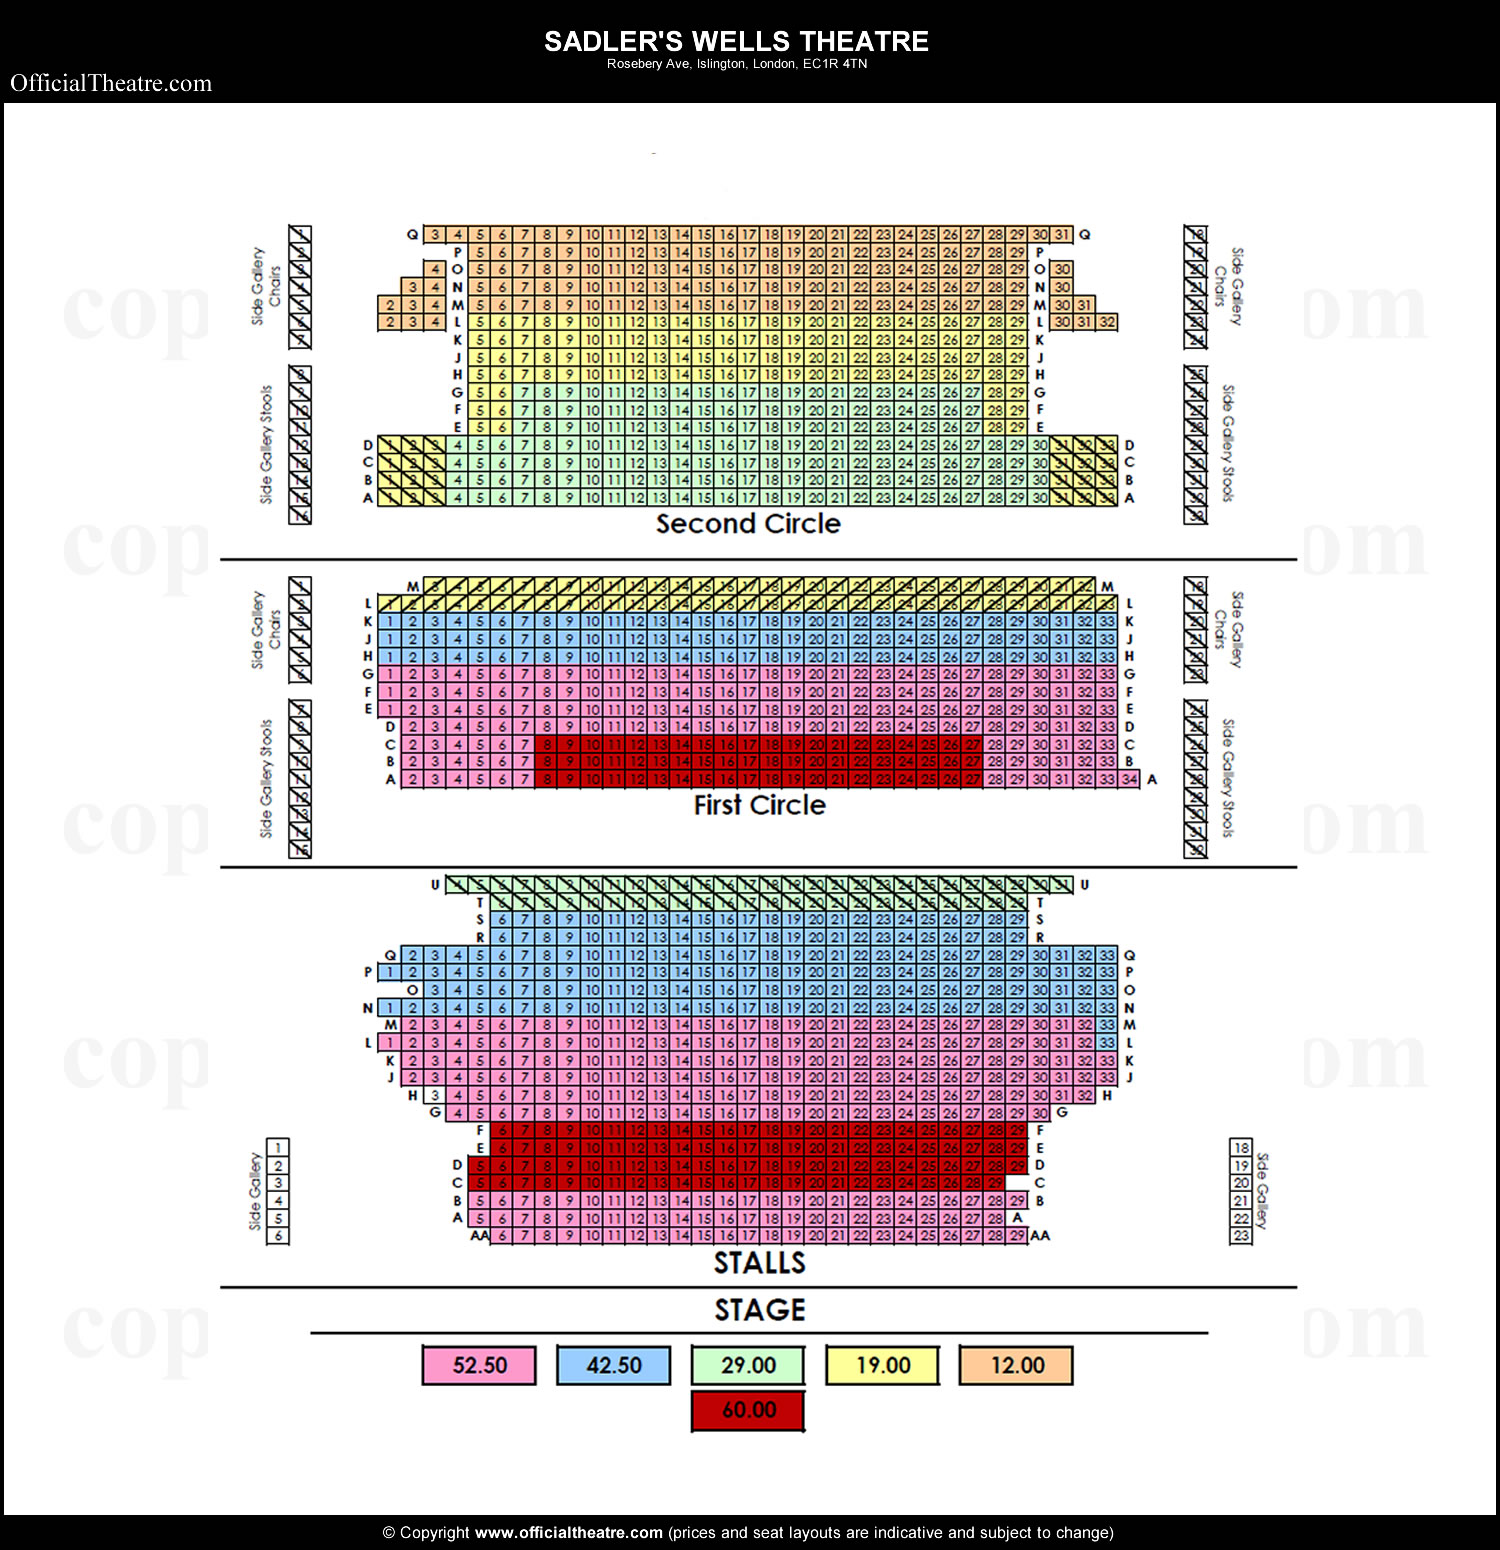 Sadlers Wells Seating Prices